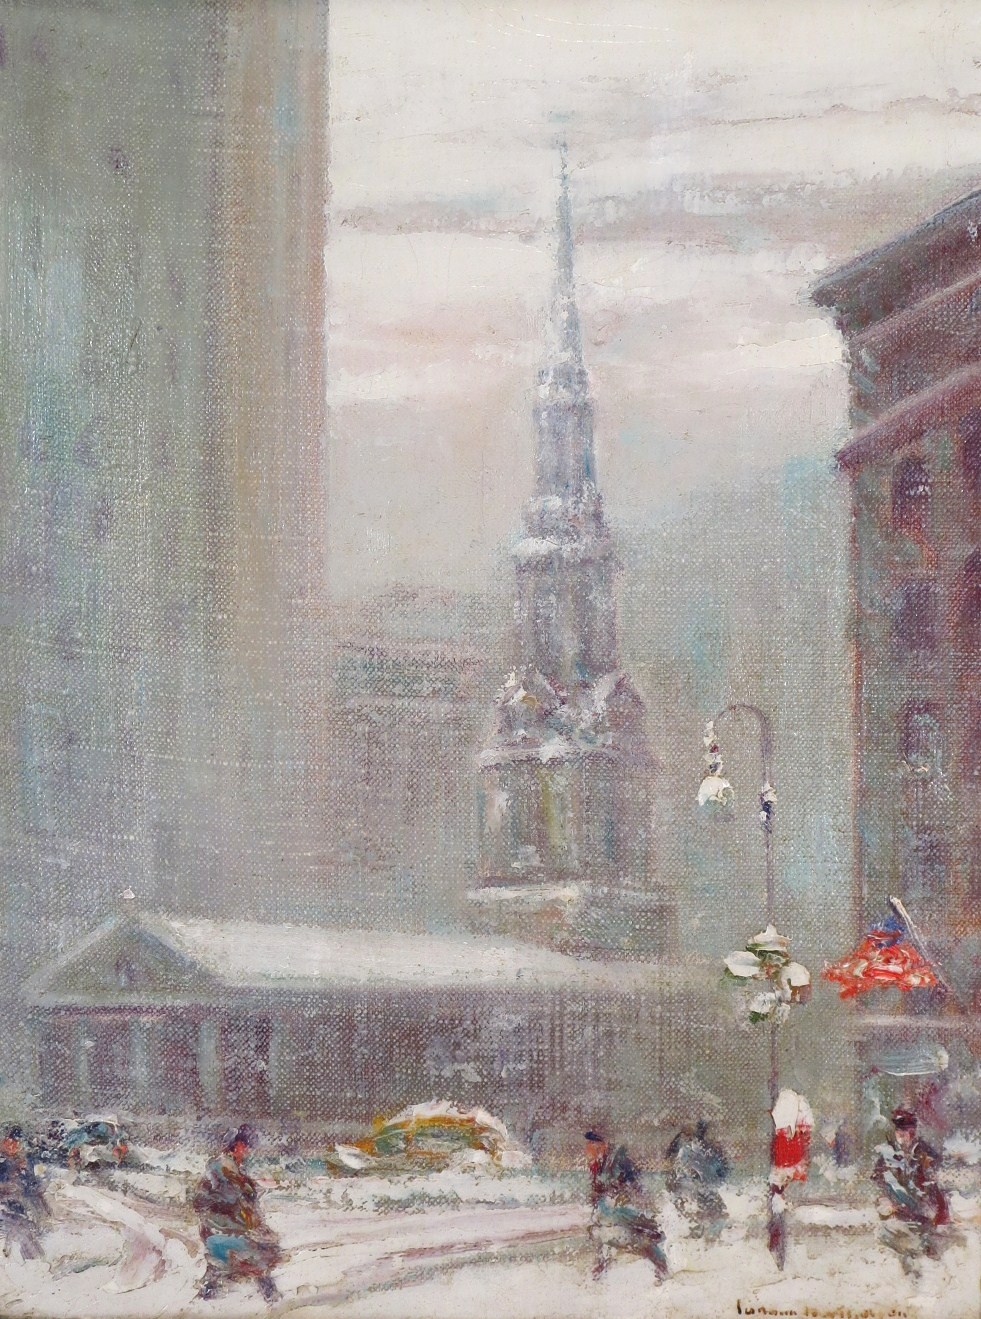 Johann Berthelsen, 1883-1969, St. Paul's Church By City Hall. Sold For $6,093 In October 2015.